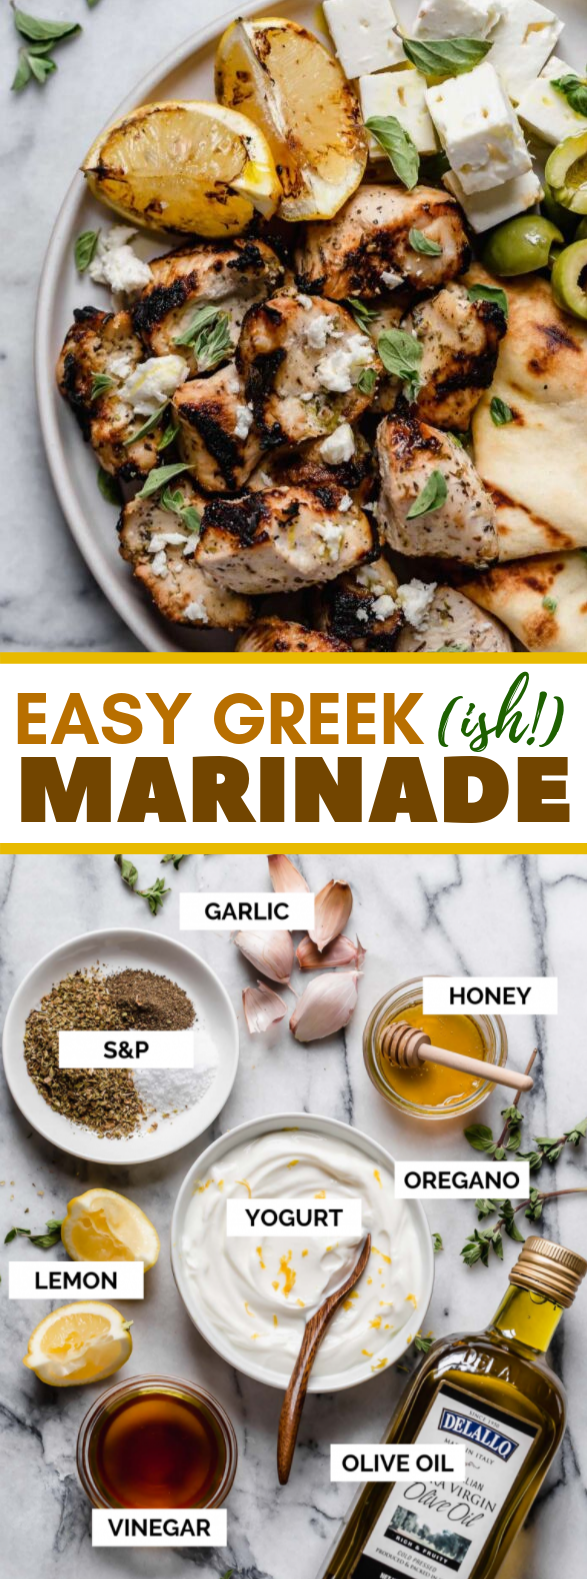 Greek Marinade #healthy #grilling